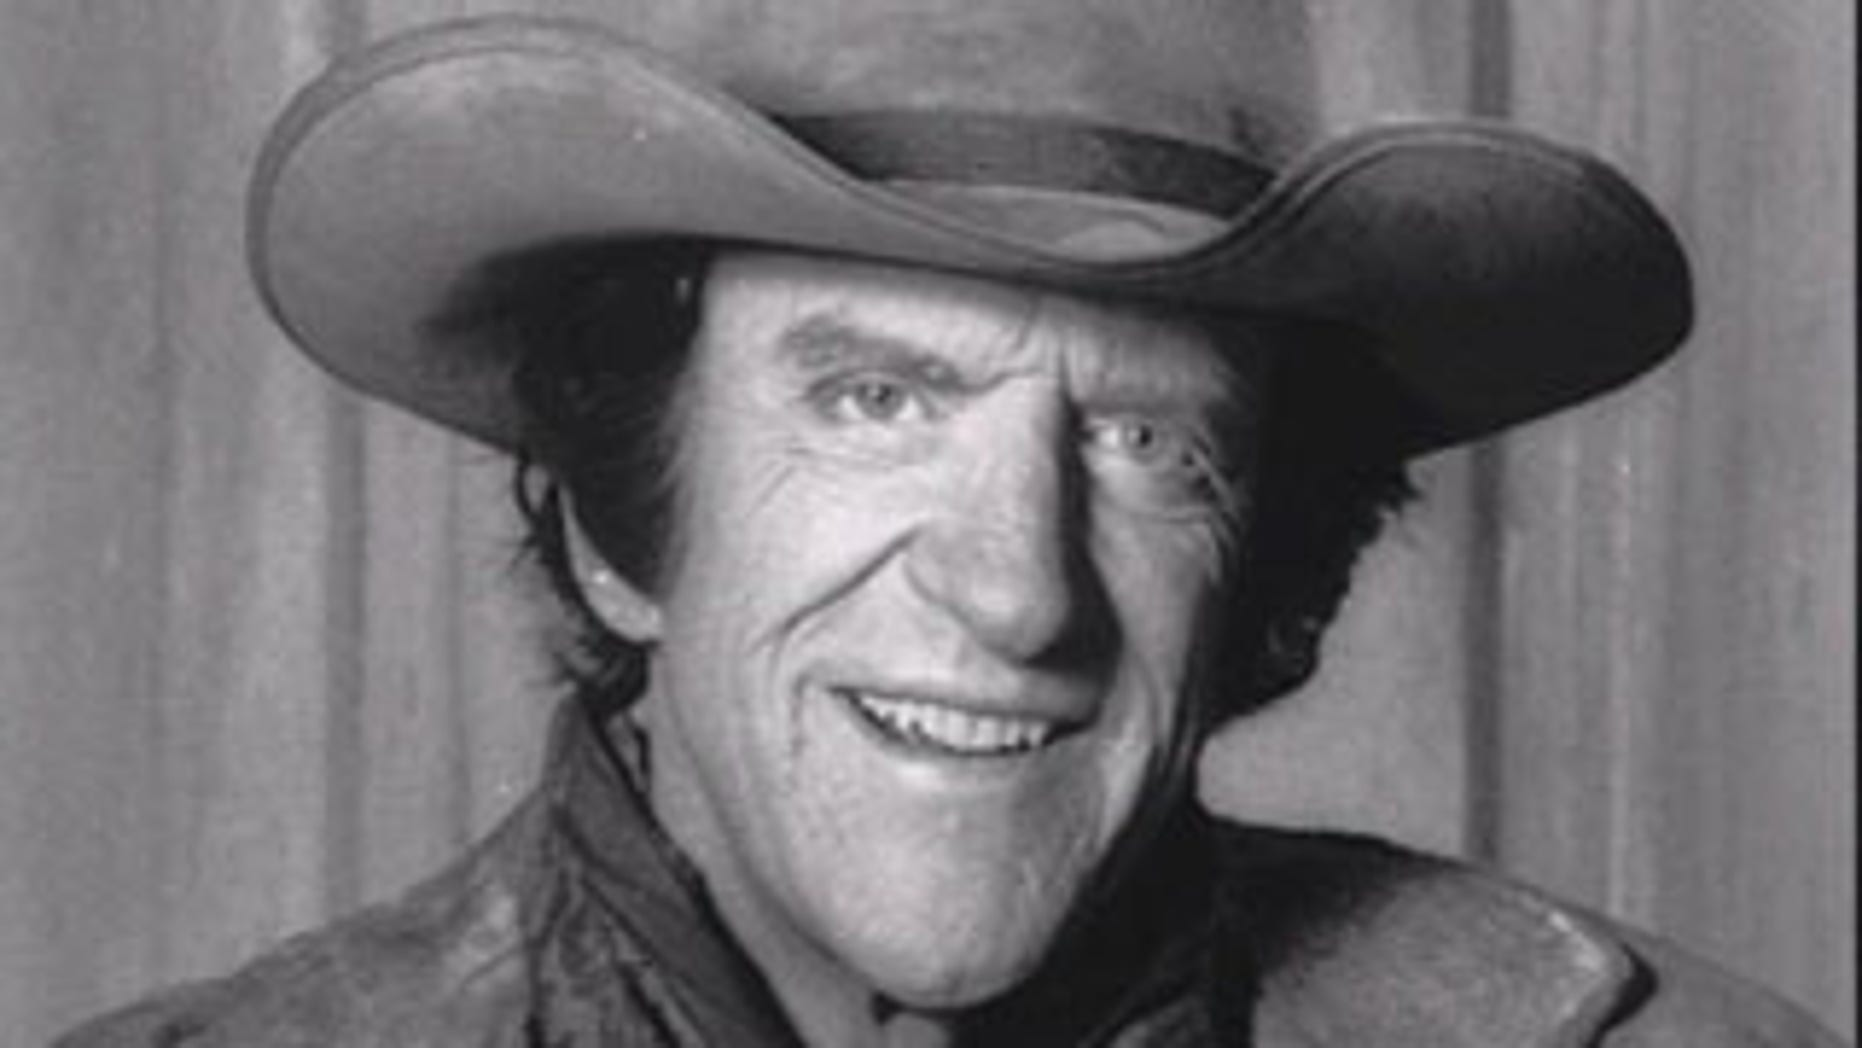 Gunsmoke' Star James Arness Dies at Age 88 | Fox News